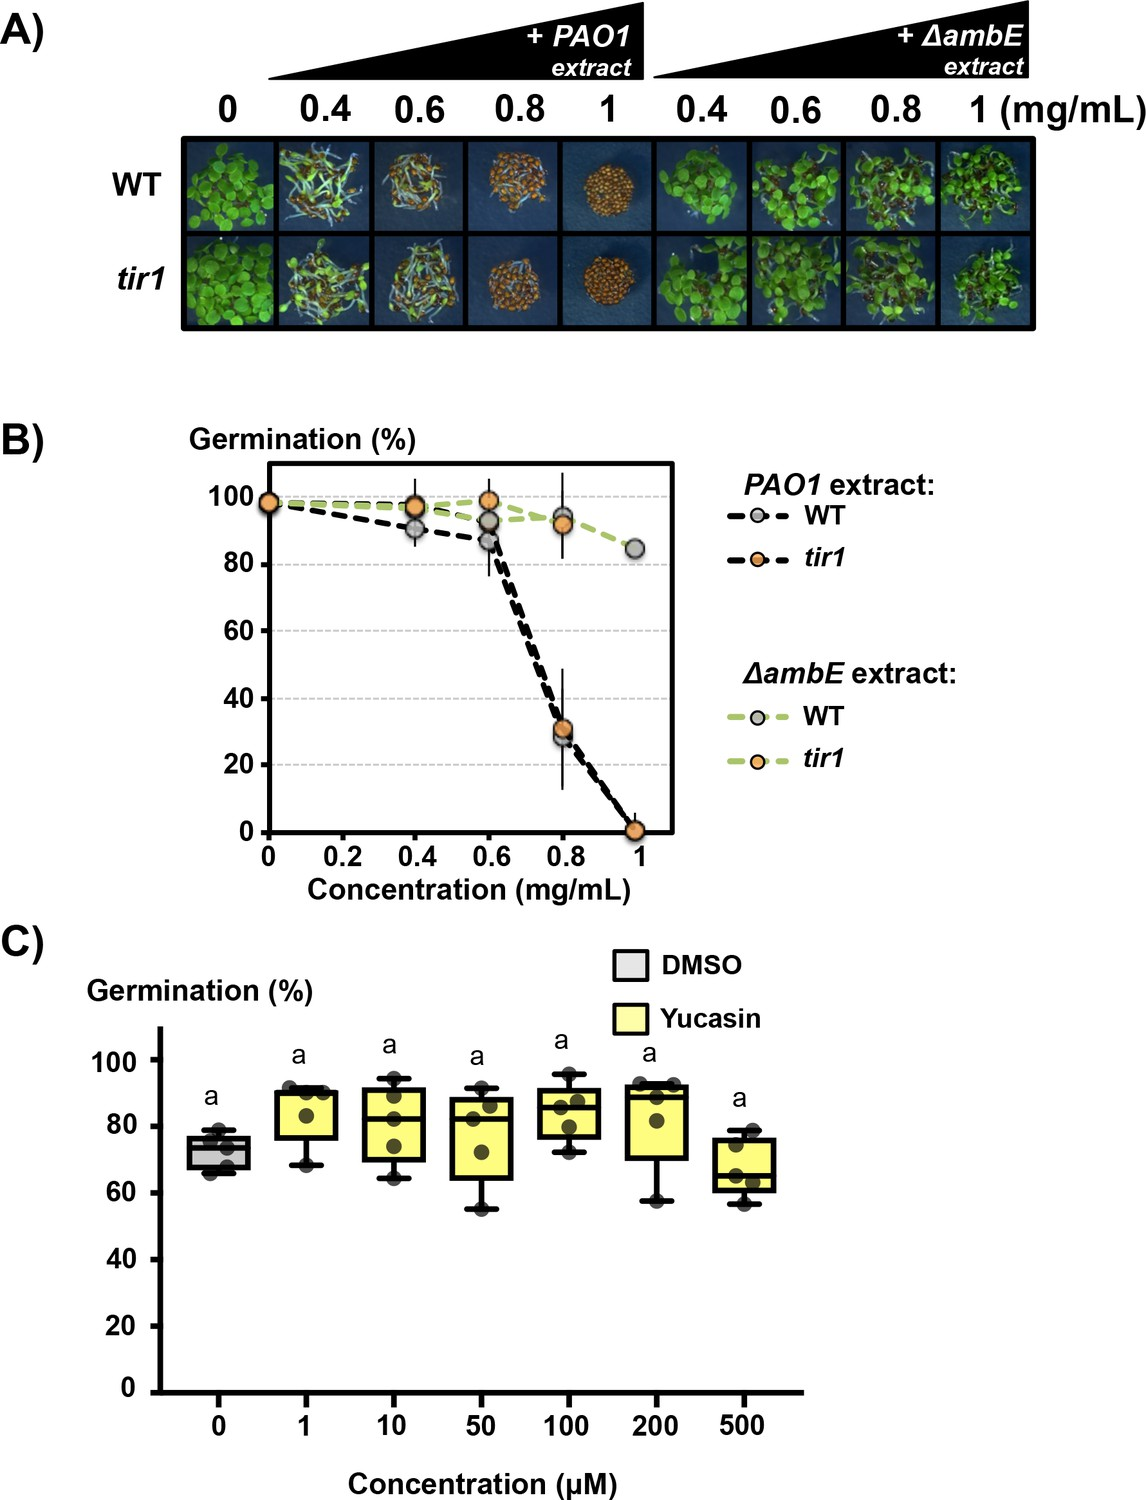 The Plant Pathogen Pseudomonas Aeruginosa Triggers A Della Dependent Seed Germination Diagram Inhibitor And Effect Of Yucasin Pao1 Ambe Extracts On